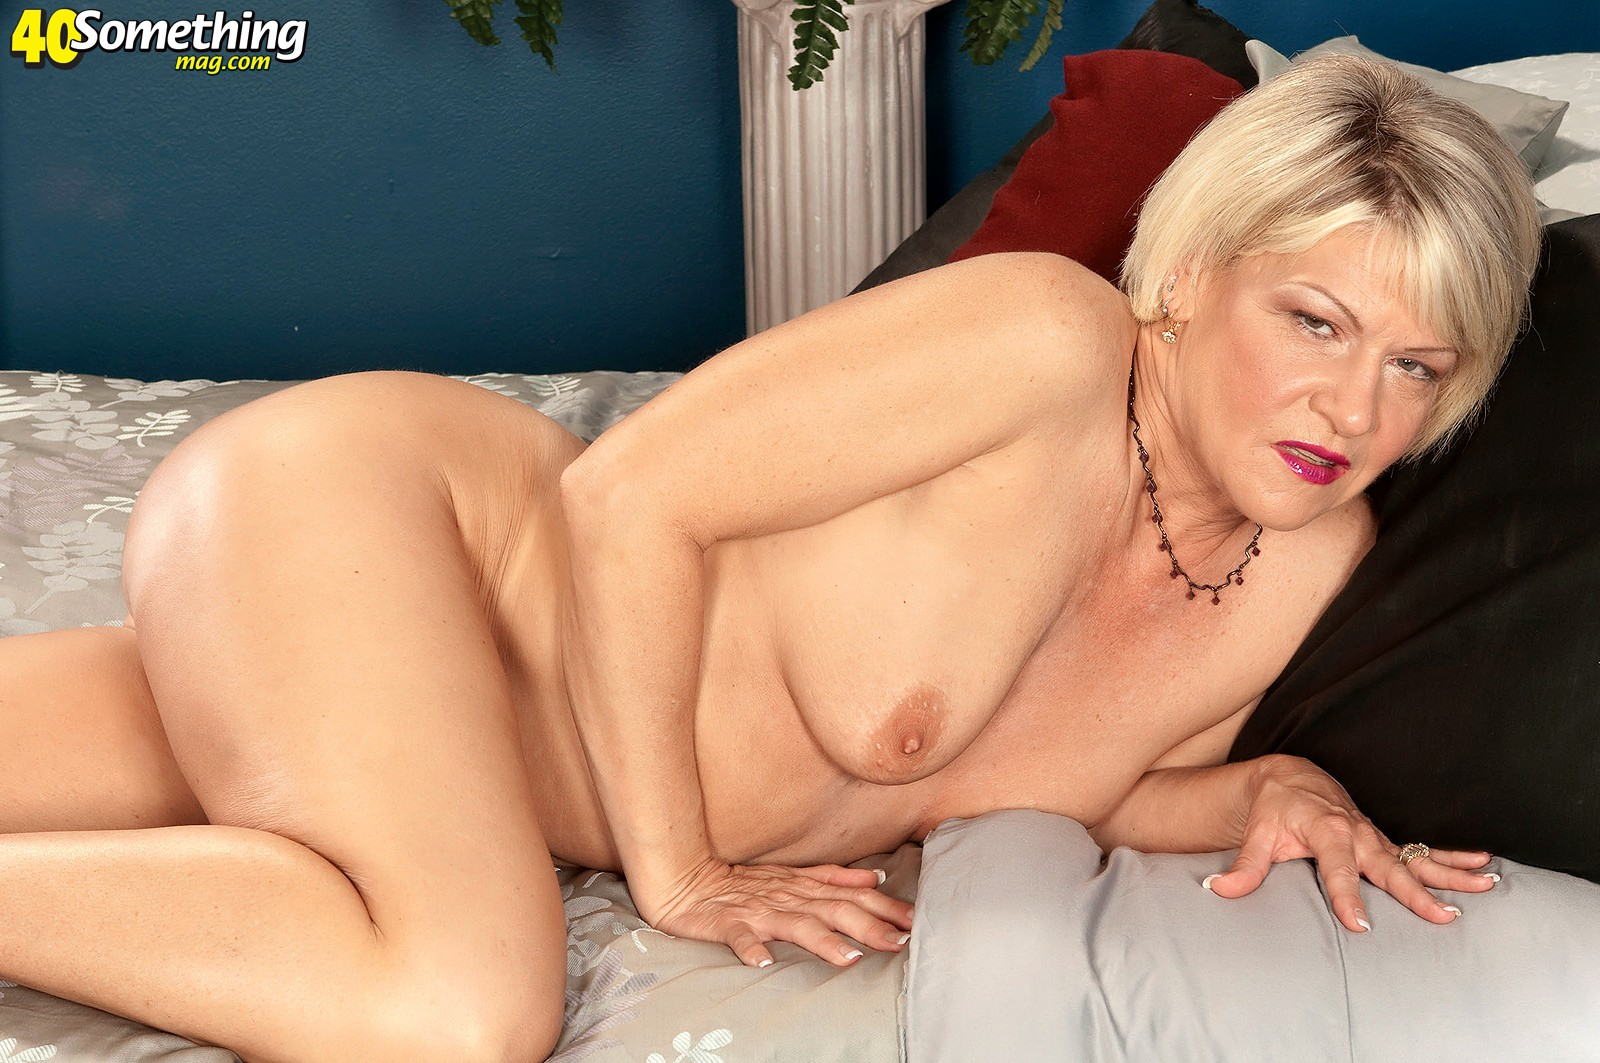 All above miss angelique foxx remarkable